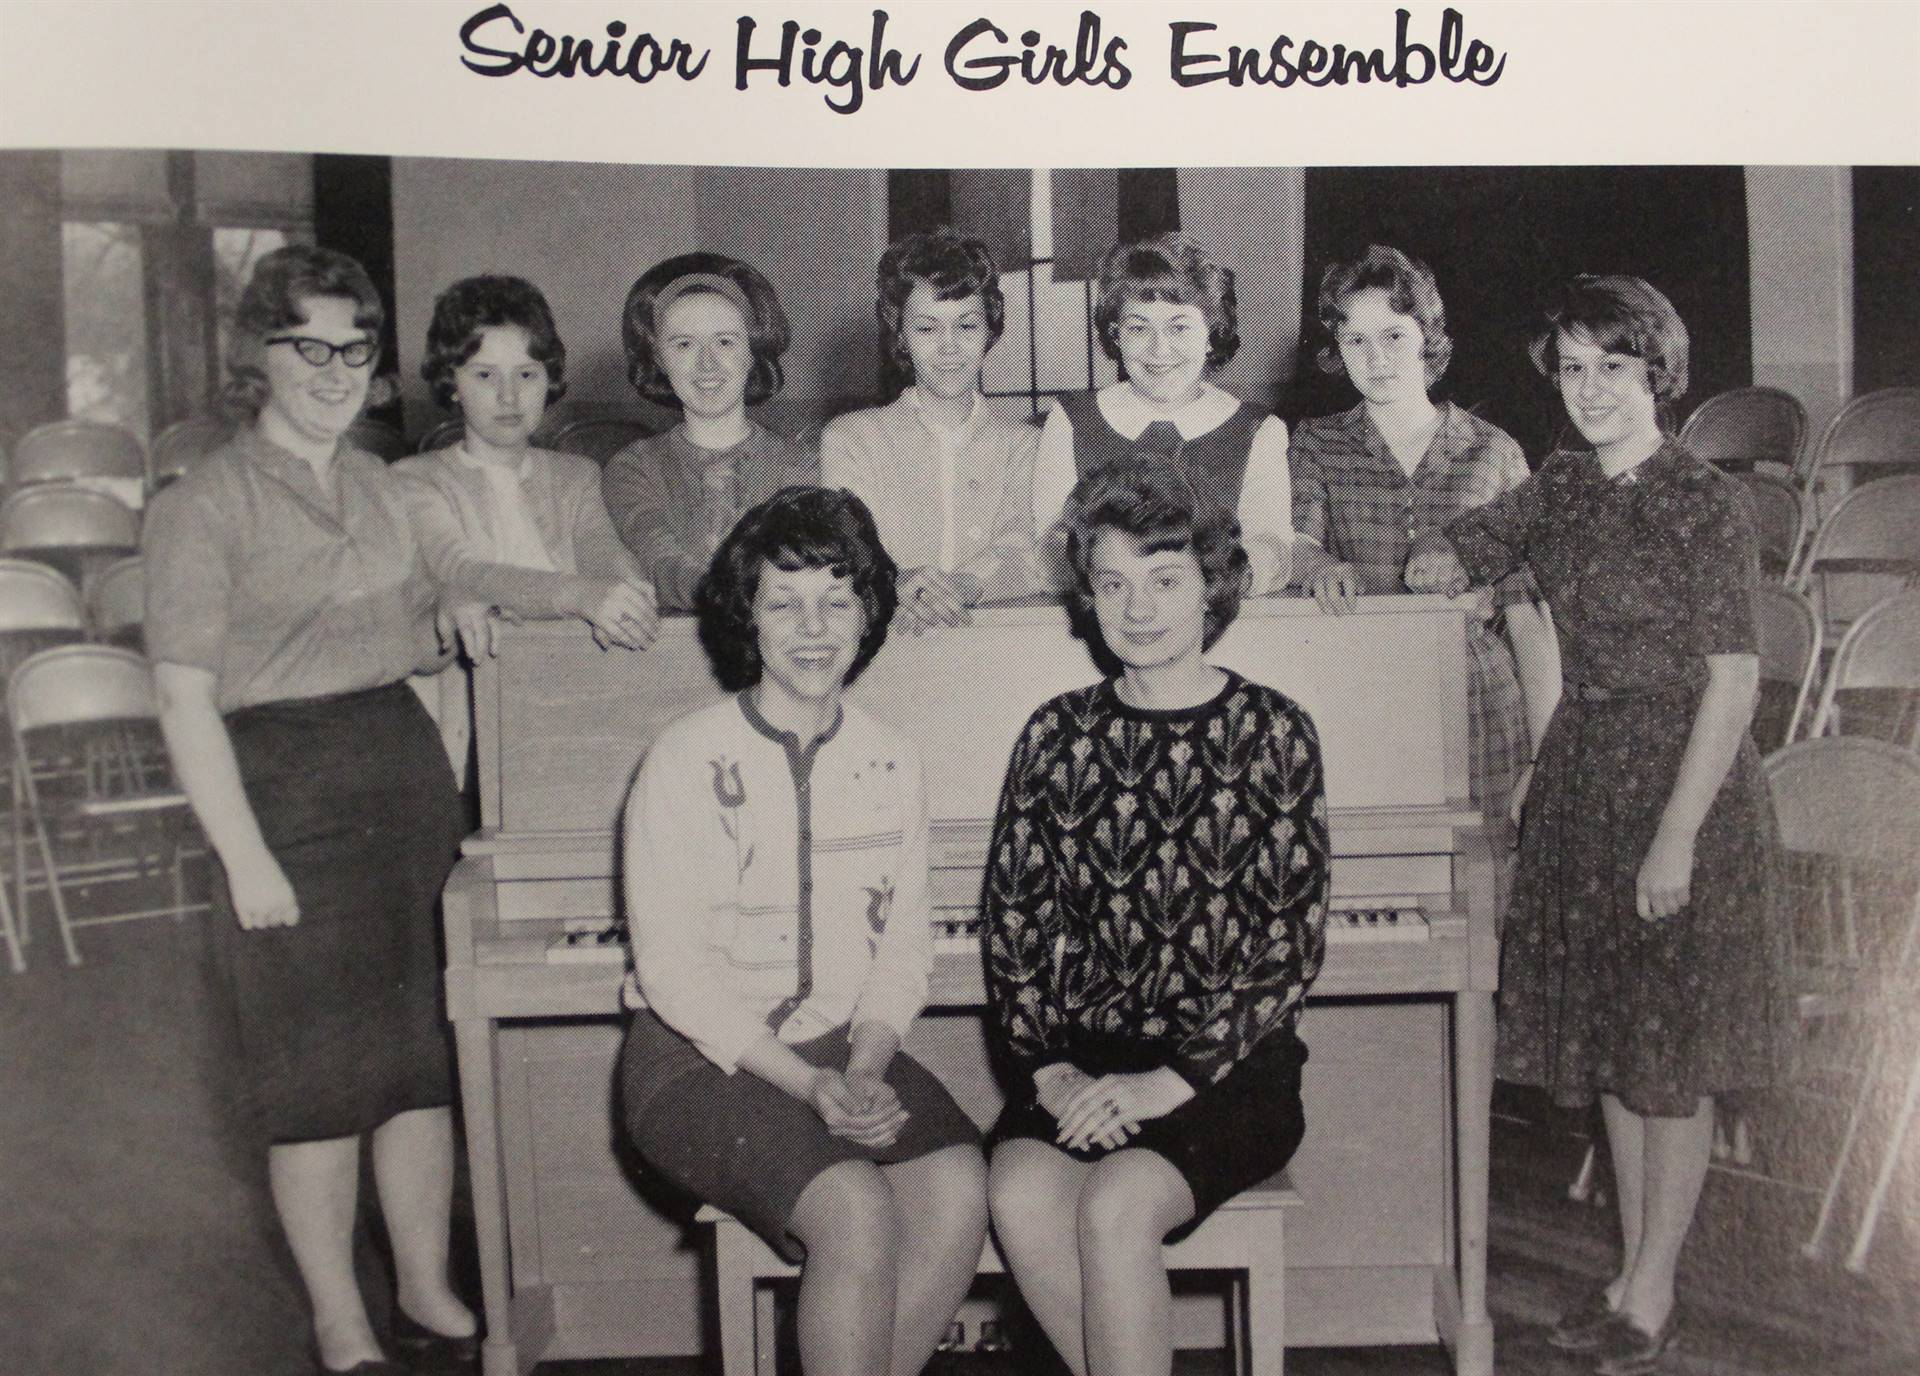 1964 Senior High Girls Ensemble